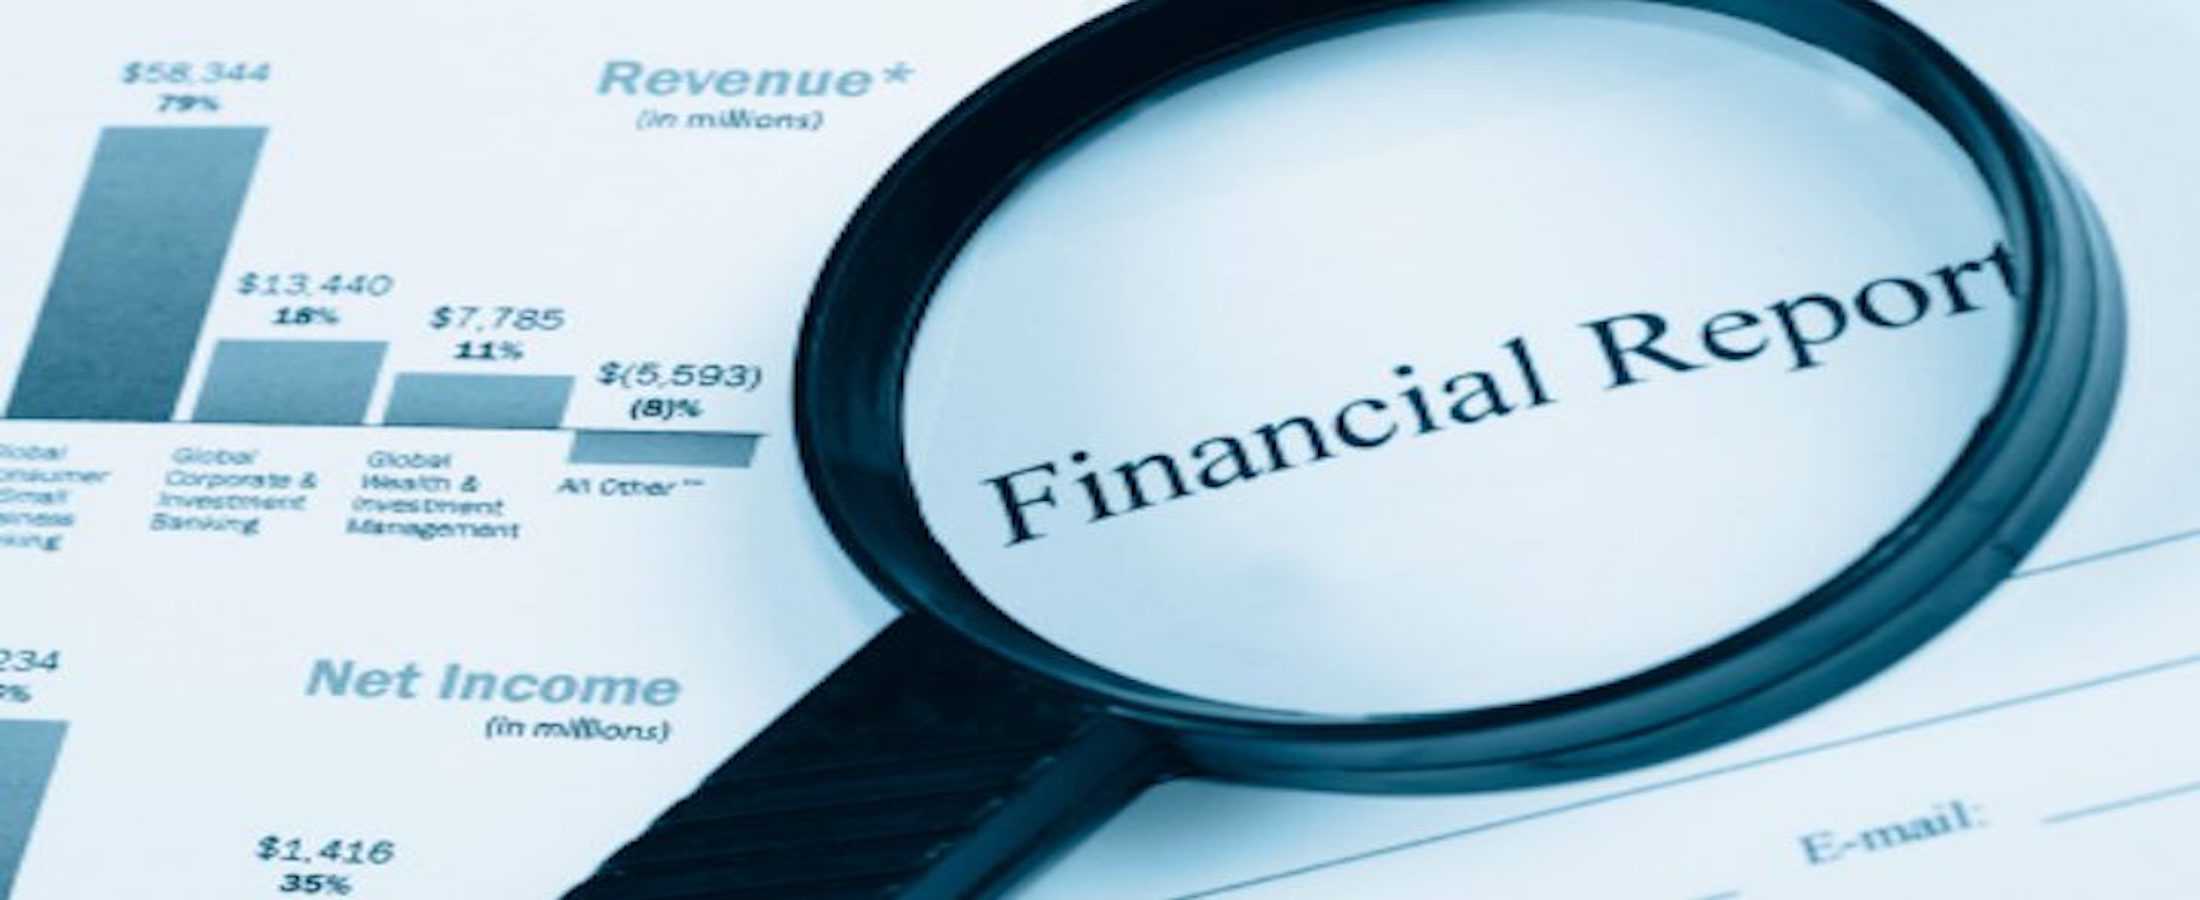 Financial_Report-720x445